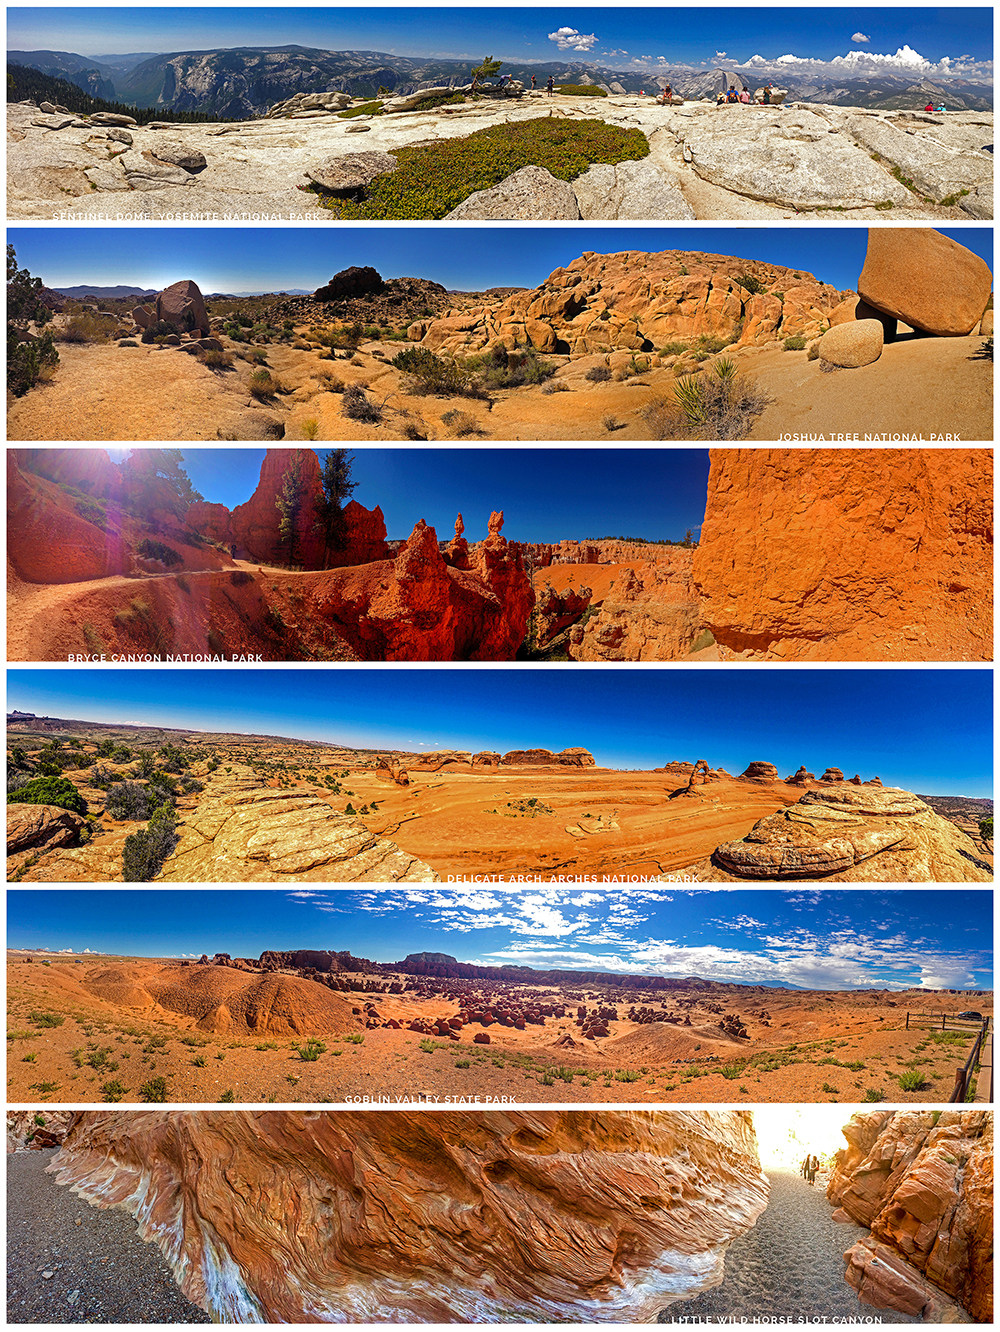 American Southwest 2014 Panorama Poster_03_2